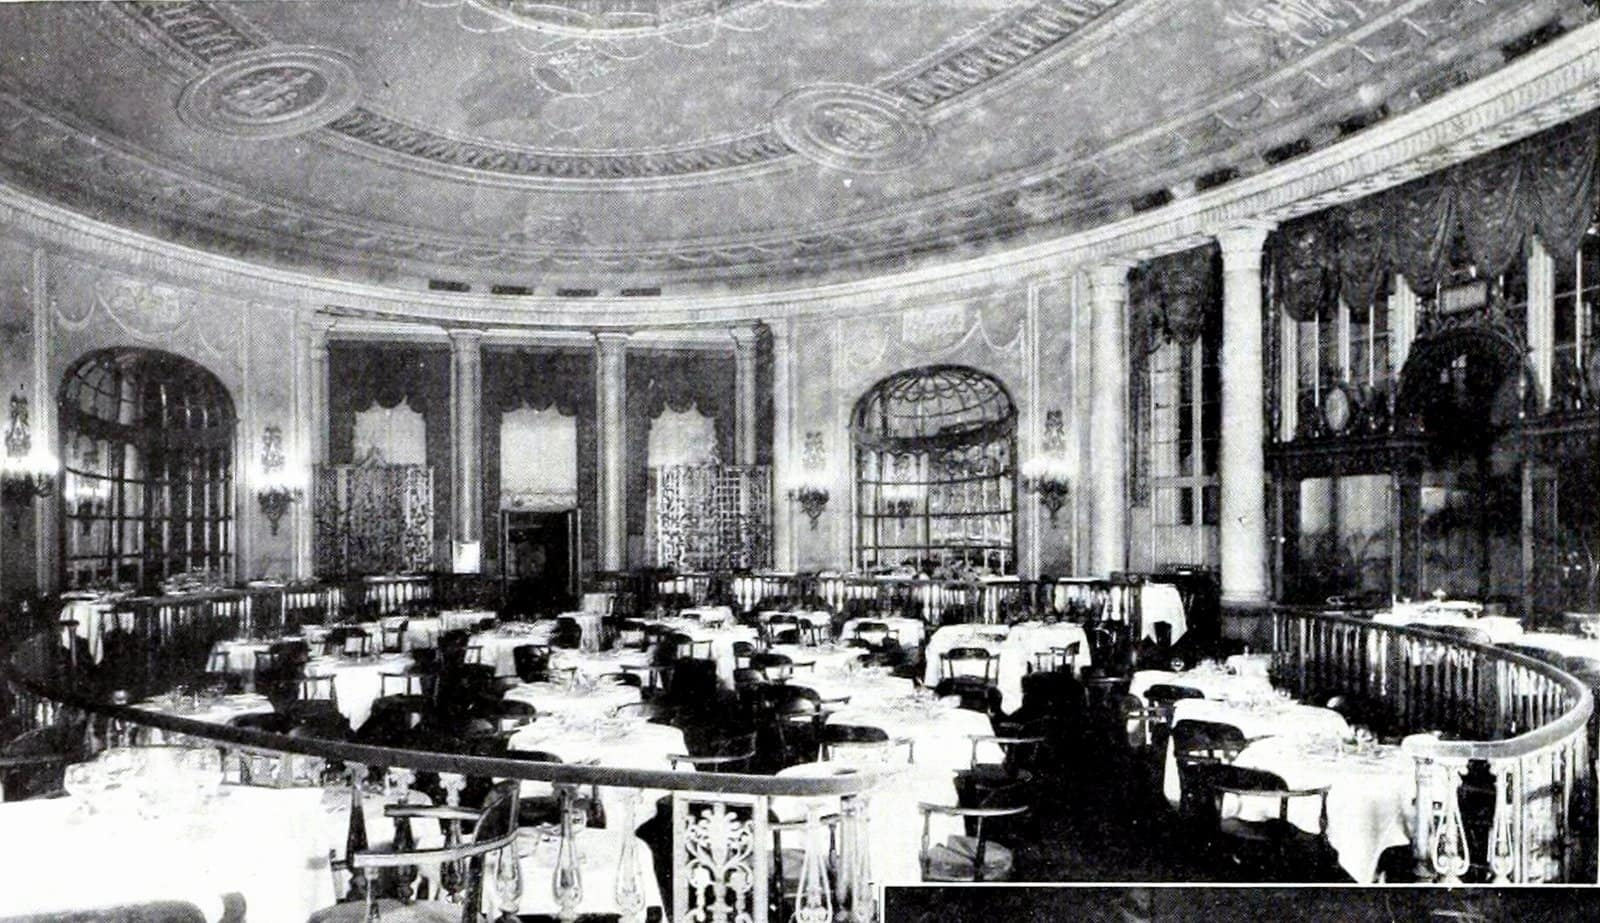 Main elliptical dining-room of the New York Ritz Hotel